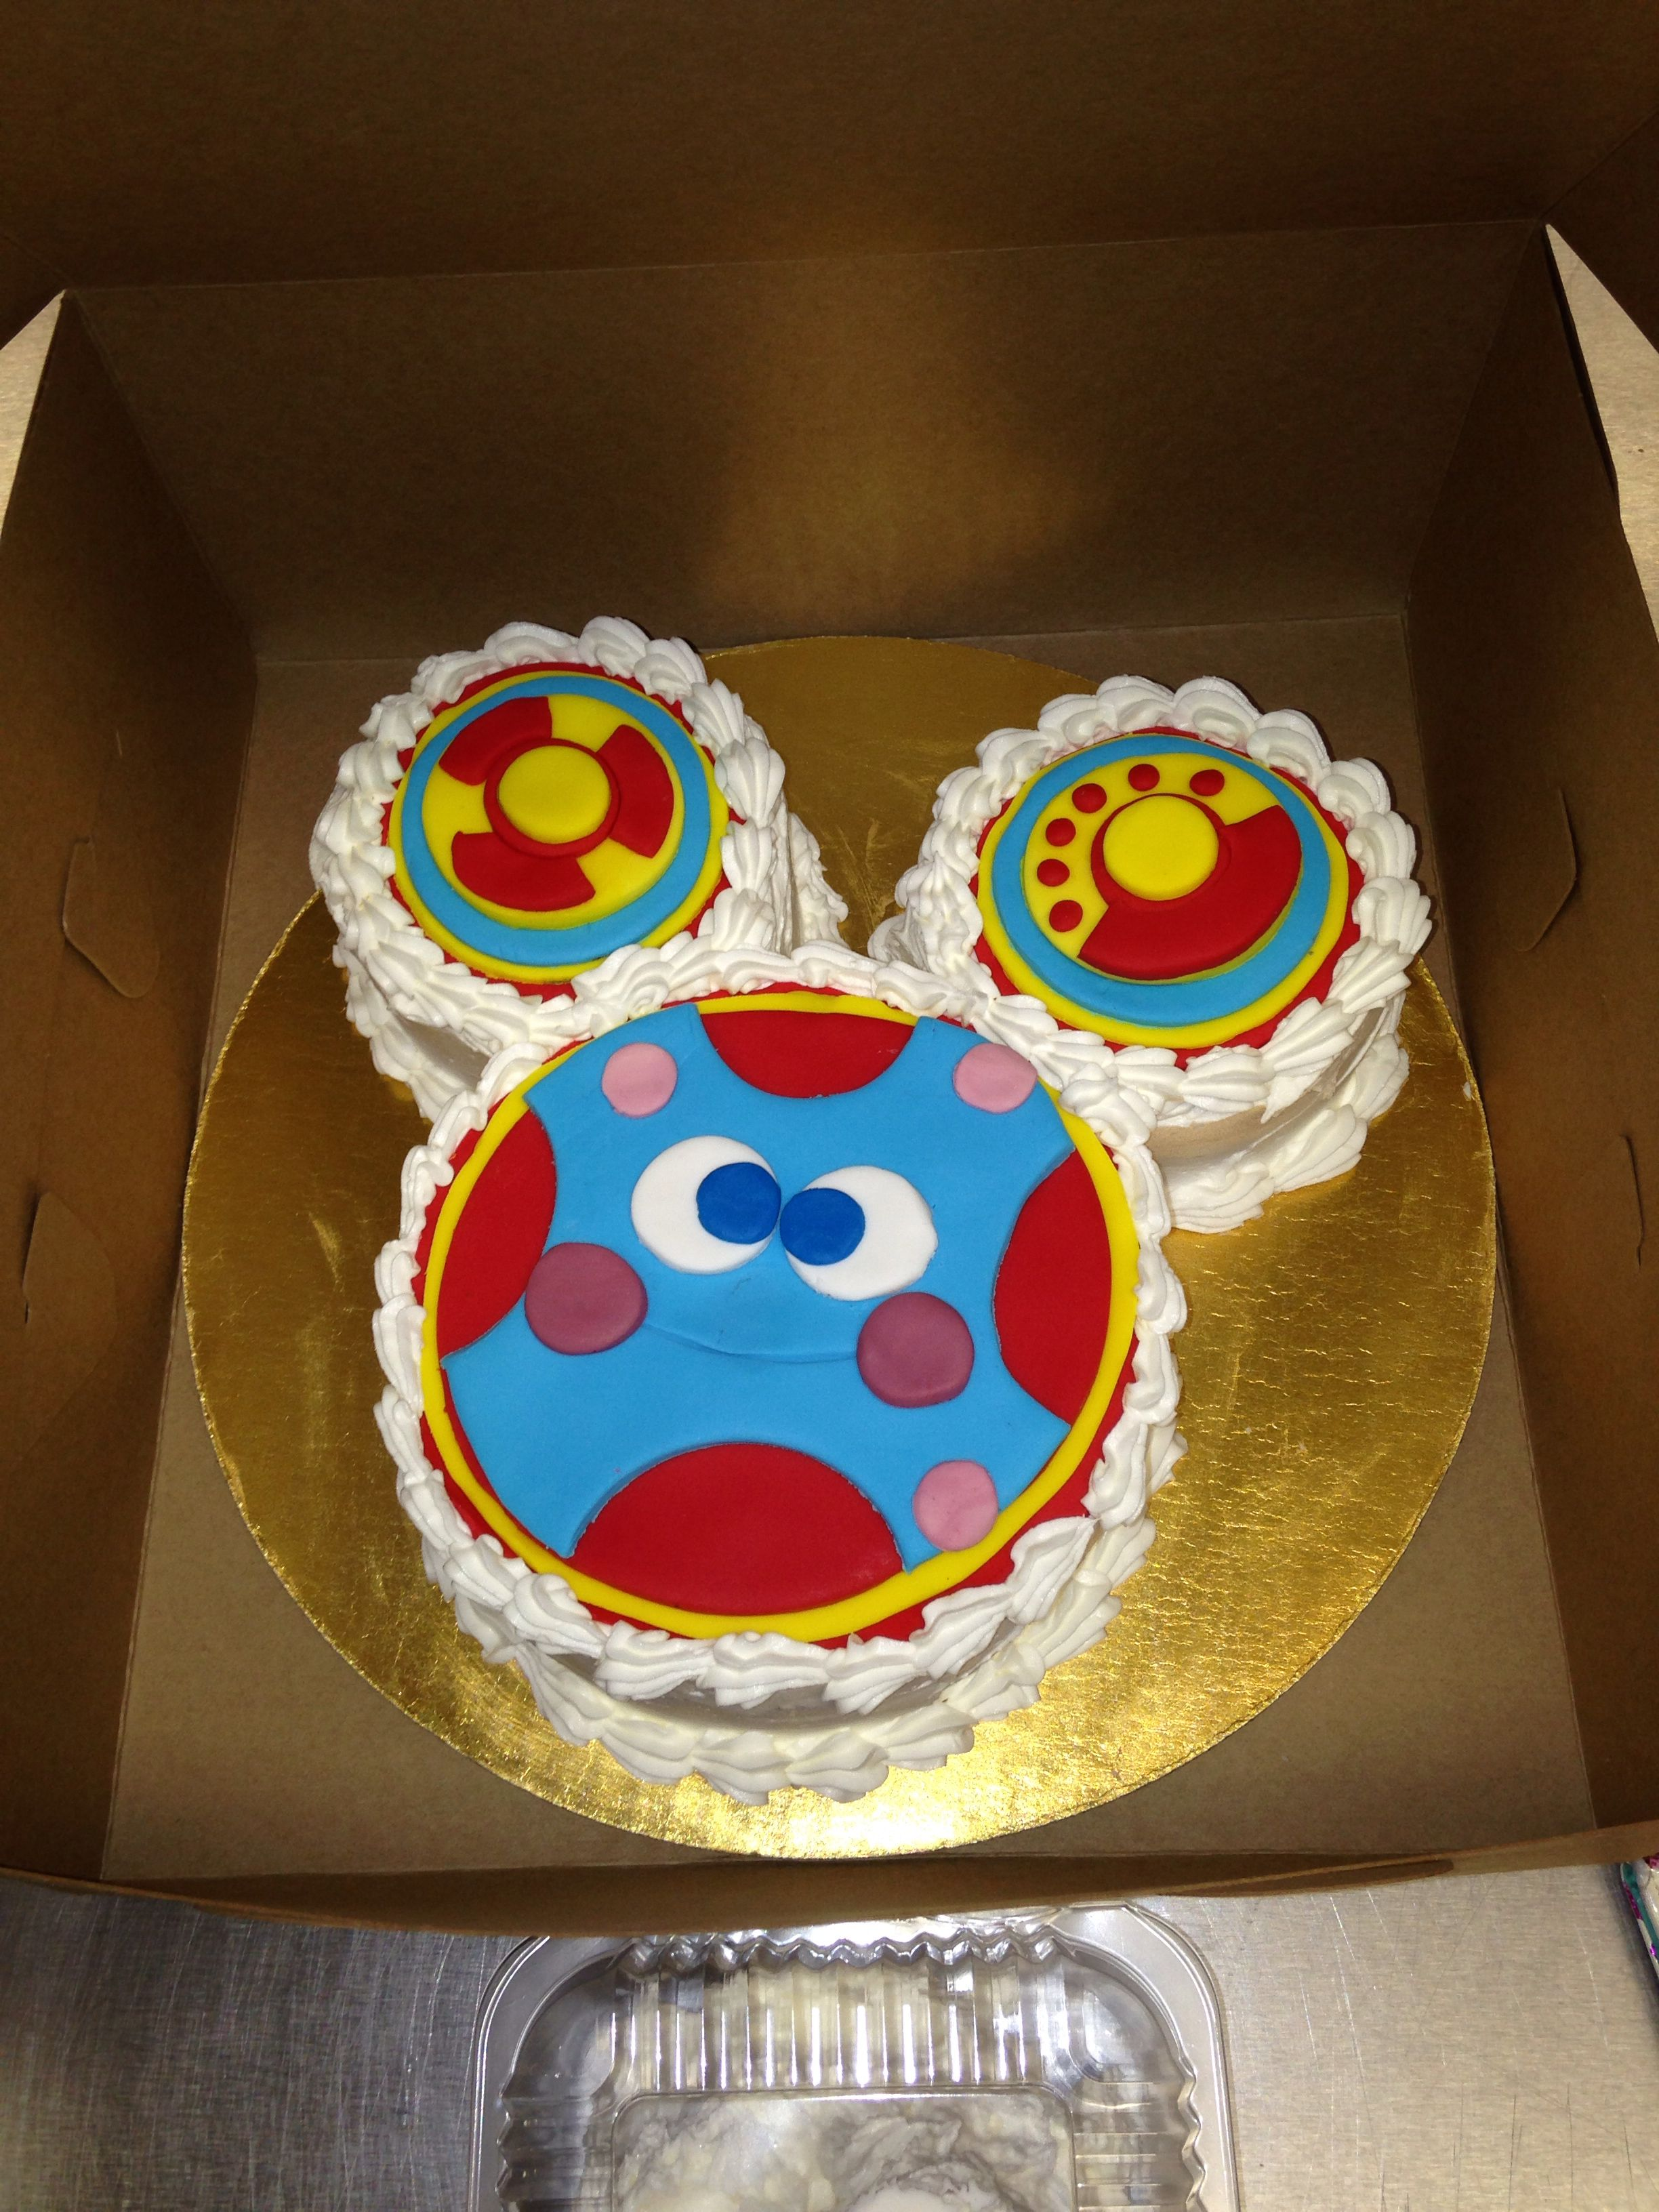 Stupendous Toodles Cake Mickey Mouse Clubhouse With Images Mickey Mouse Funny Birthday Cards Online Alyptdamsfinfo